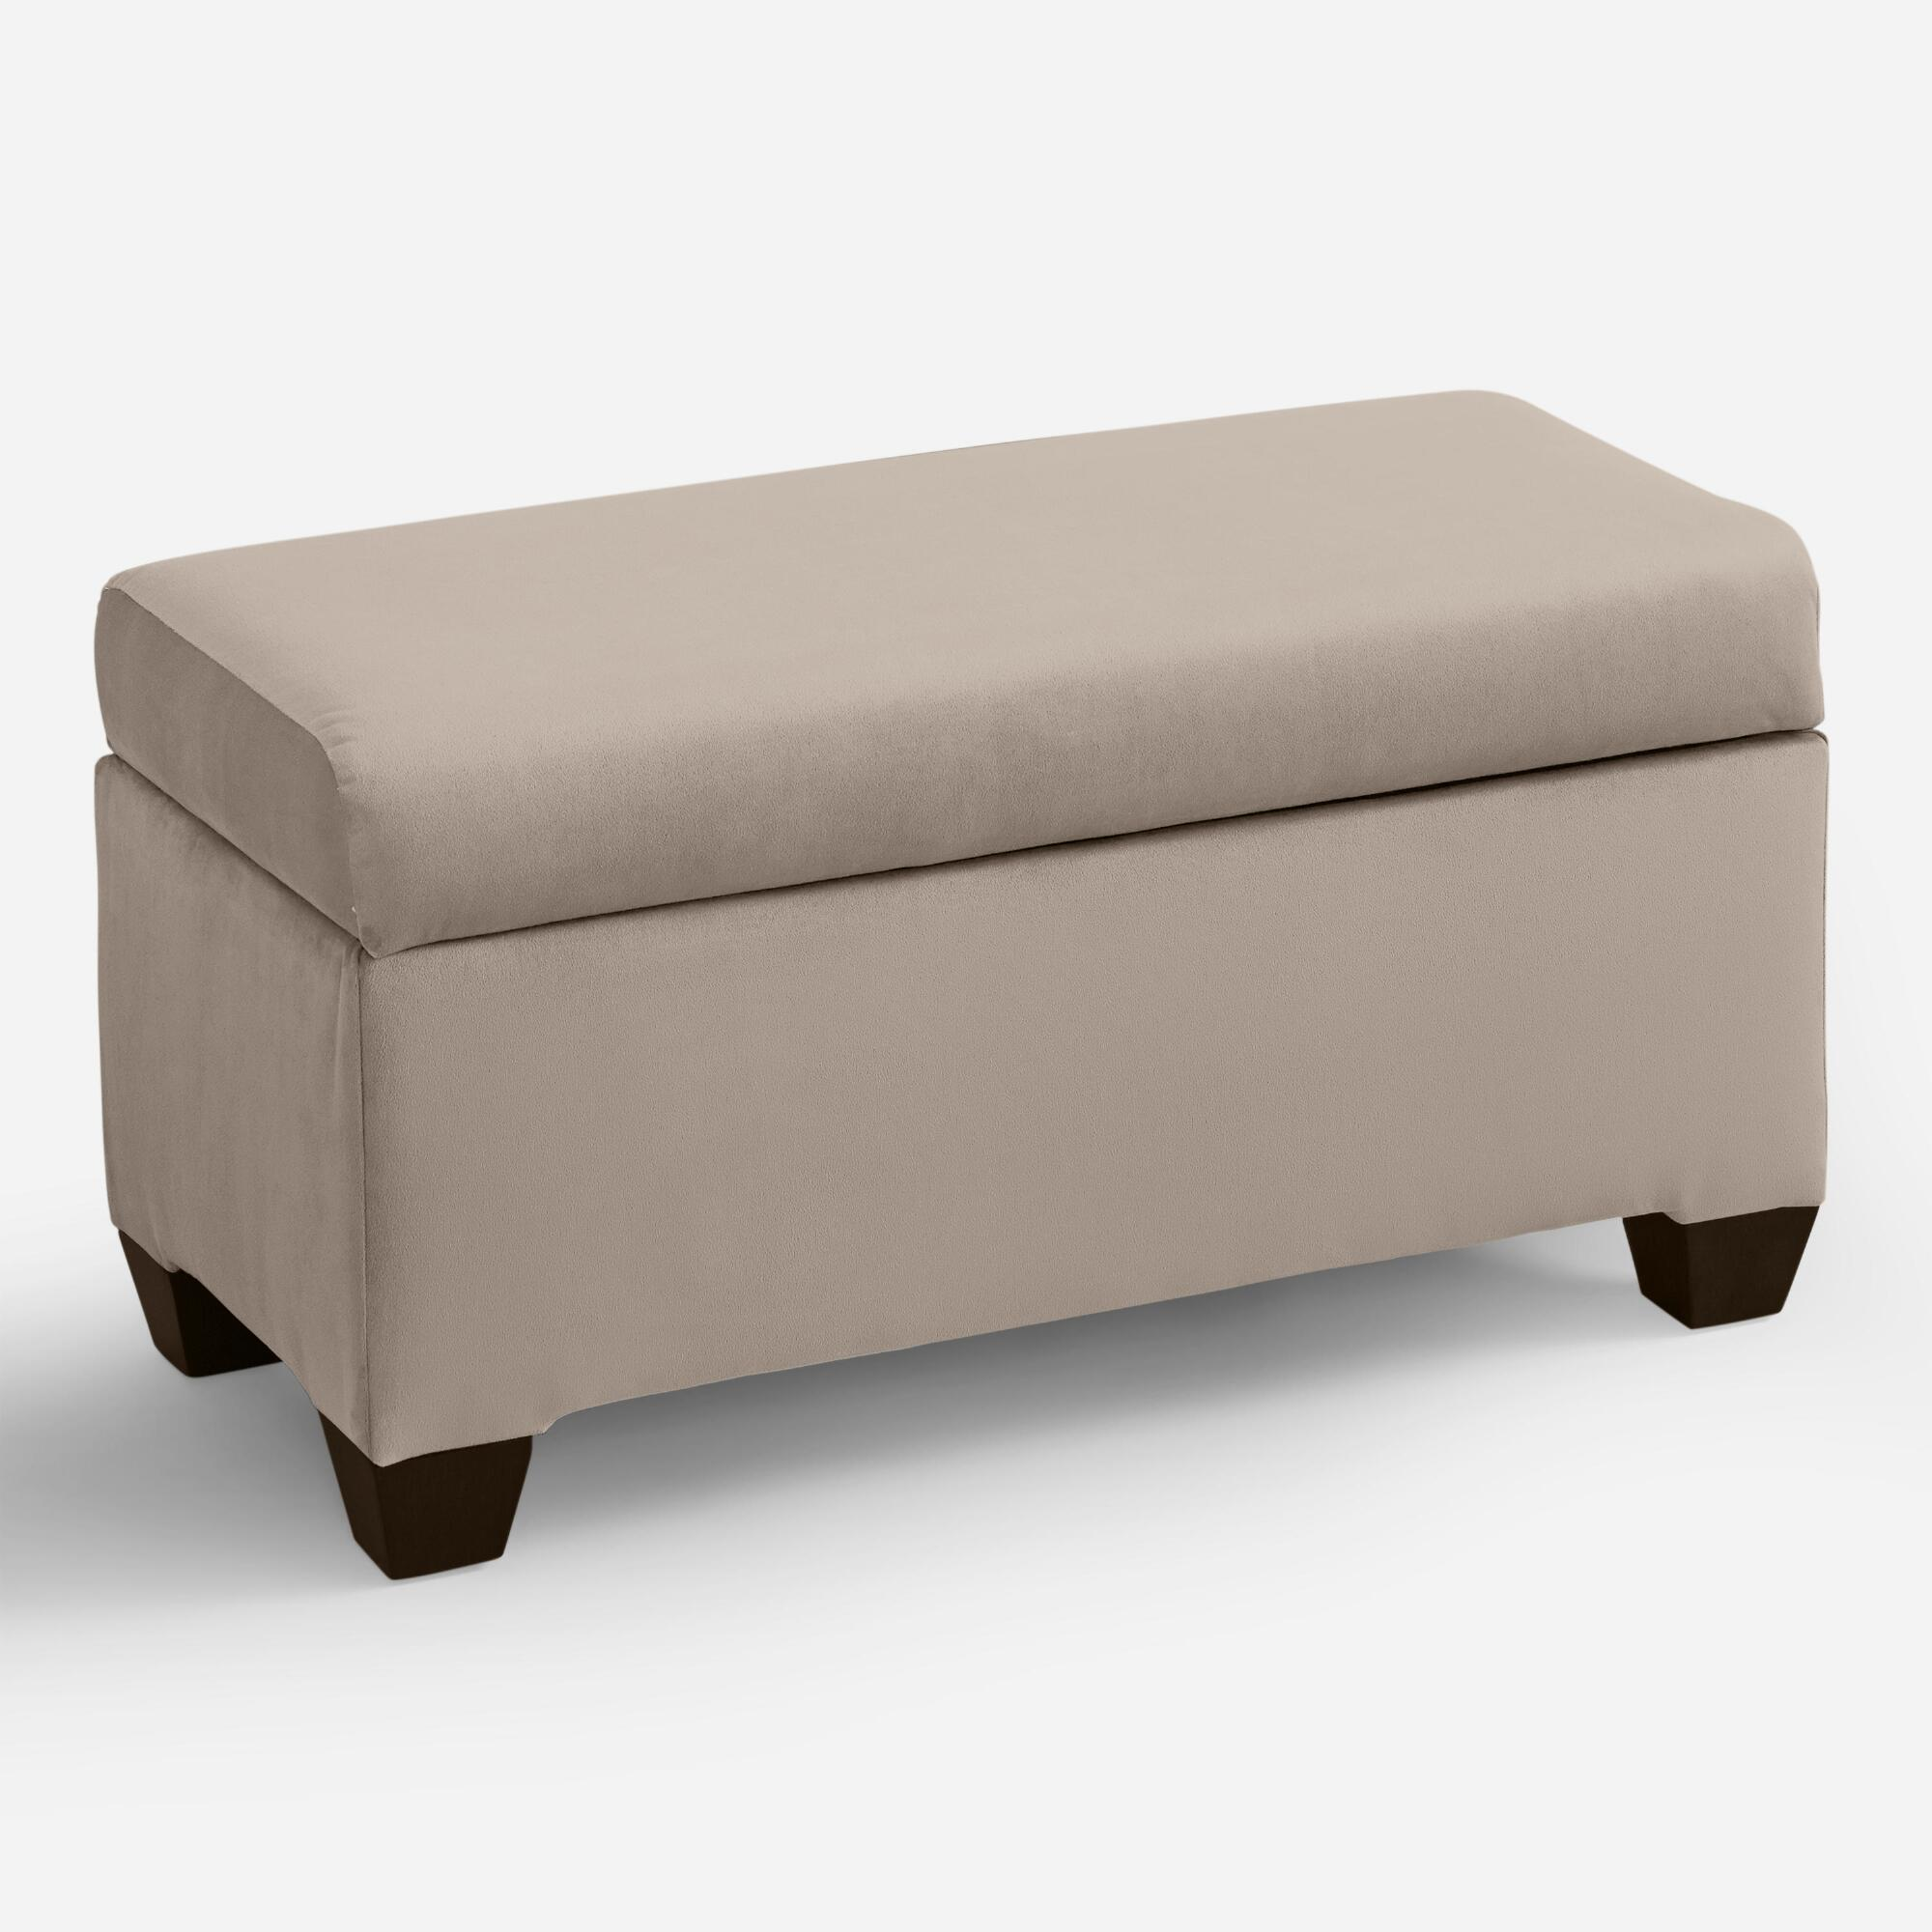 Velvet Pembroke Upholstered Storage Bench World Market